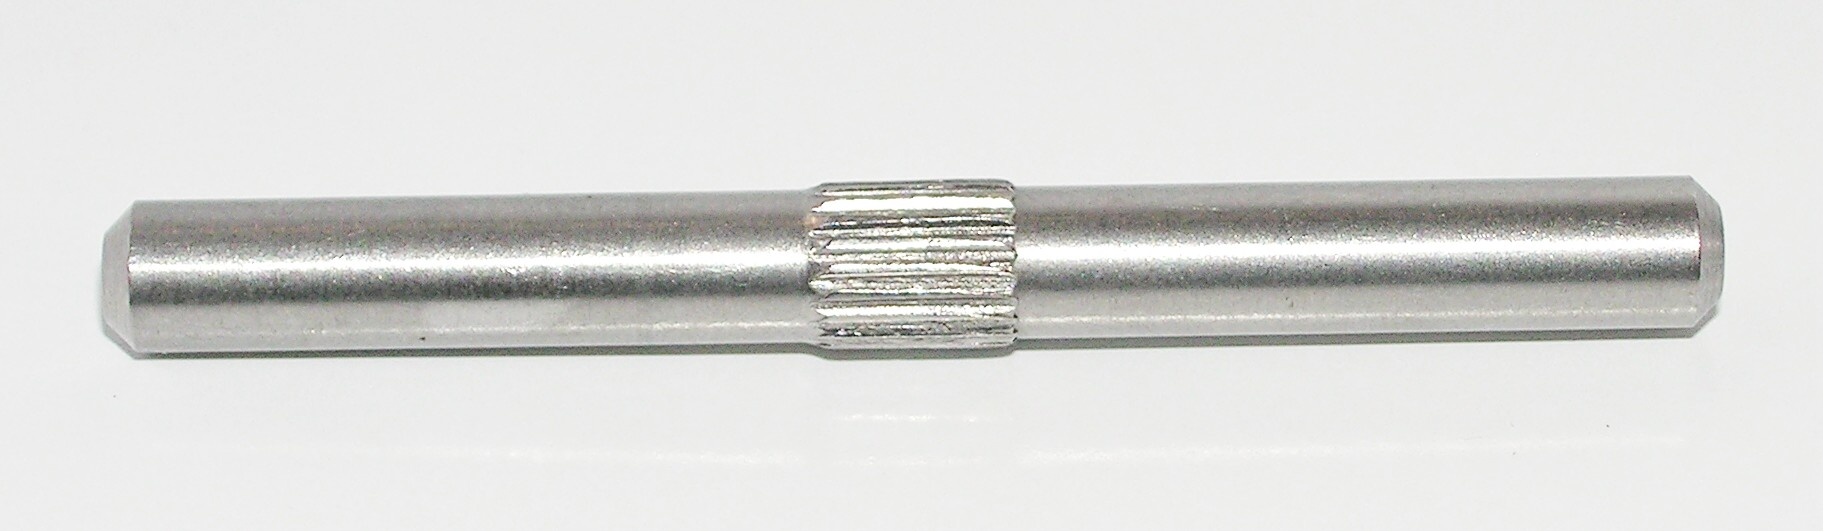 Pin with Centre Knurl6